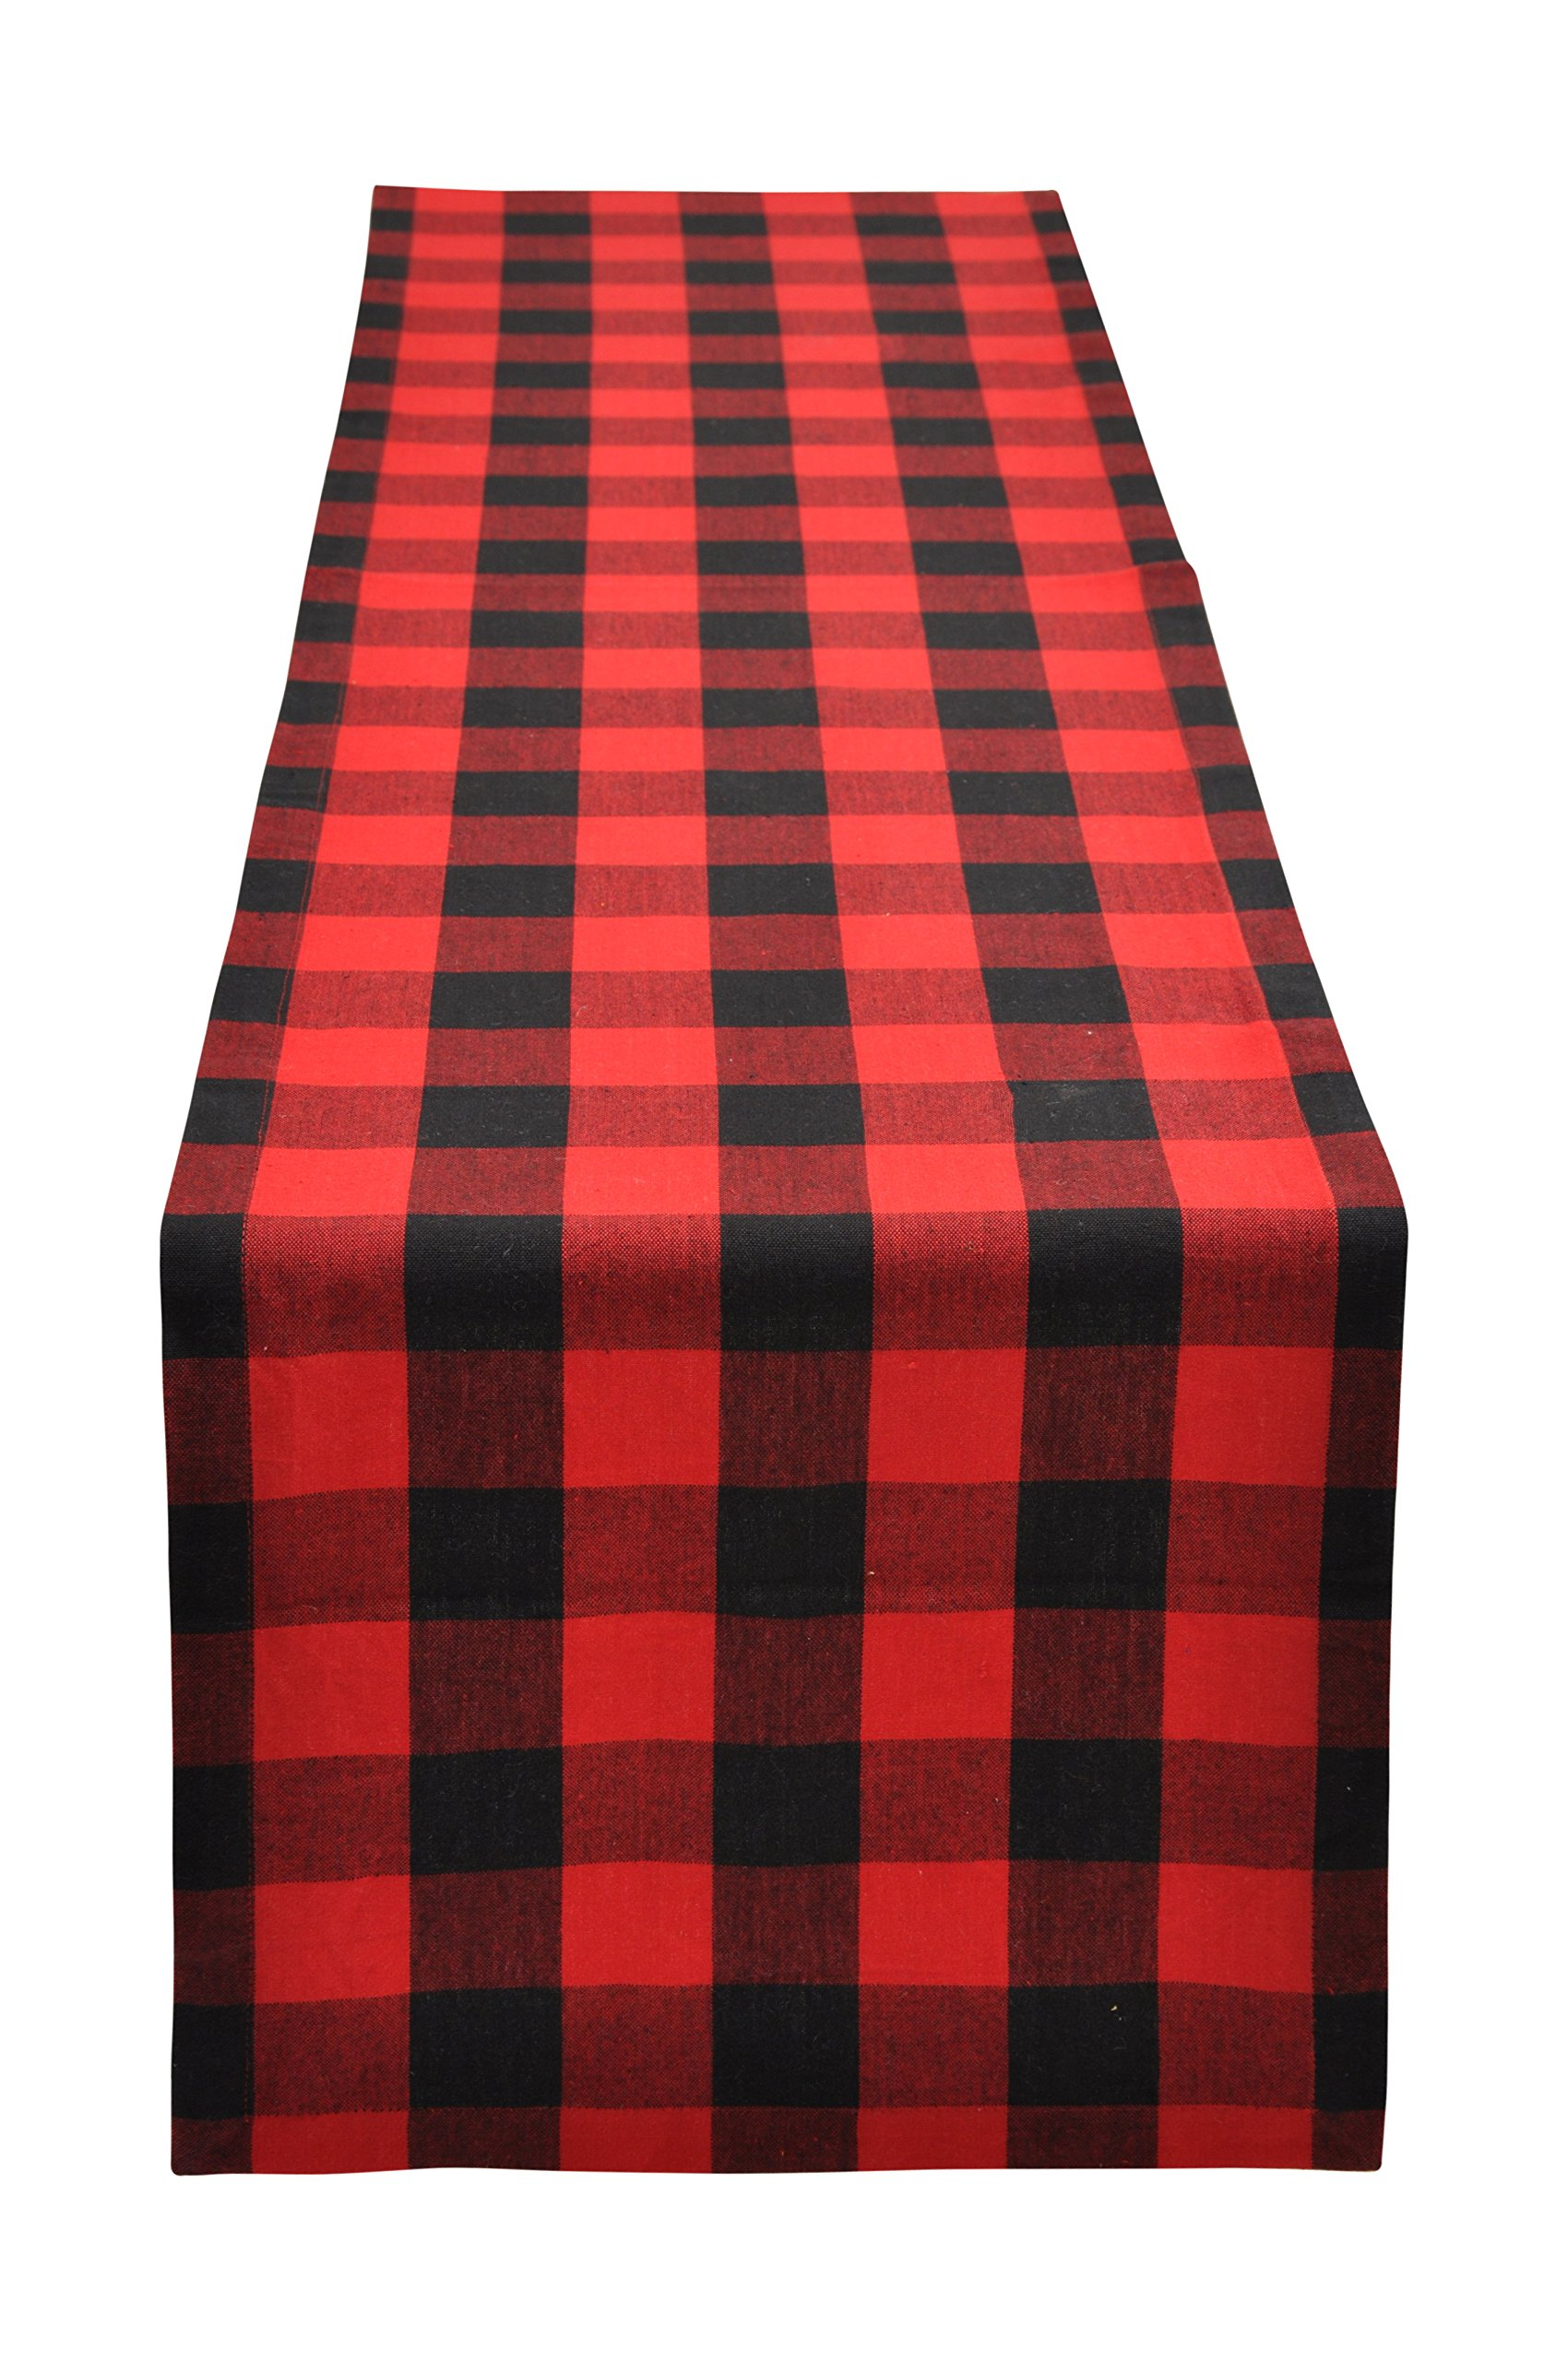 Yourtablecloth Buffalo Plaid Checkered Table Runner Trendy & Modern Plaid Design 100% Cotton Tablerunner Elegant Décor for Indoor&Outdoor Events 14 x 108 Red and Black - BEAUTIFUL TABLE RUNNER - Yourtablecloth table linen is a handsome piece of décor that will breathe extra oomph & vigour into your plain table! With its beautiful plaid design and bright attractive colours, our tablerunner is sure to spruce up any room and add just the right touch of glamor & drama! FOR ALL OCCASIONS - Be it for Christmas, Halloween, Easter, Birthday Parties, and Barbecue evenings, our long table runner will grace every occasion & add to the festive look, while its cool design proves ideal for both indoor & outdoor activities at your home, garden, and office! PREMIUM PLAID TABLE RUNNER - Made with 100 % superior grade cotton, our holiday table runner doesn't wear or tear easily, and features a strong topstitching to avoid fraying & loose ends, while its bright designs will not fade even after multiple washes, giving you many years of use! - table-runners, kitchen-dining-room-table-linens, kitchen-dining-room - 814HGIvhnAL -